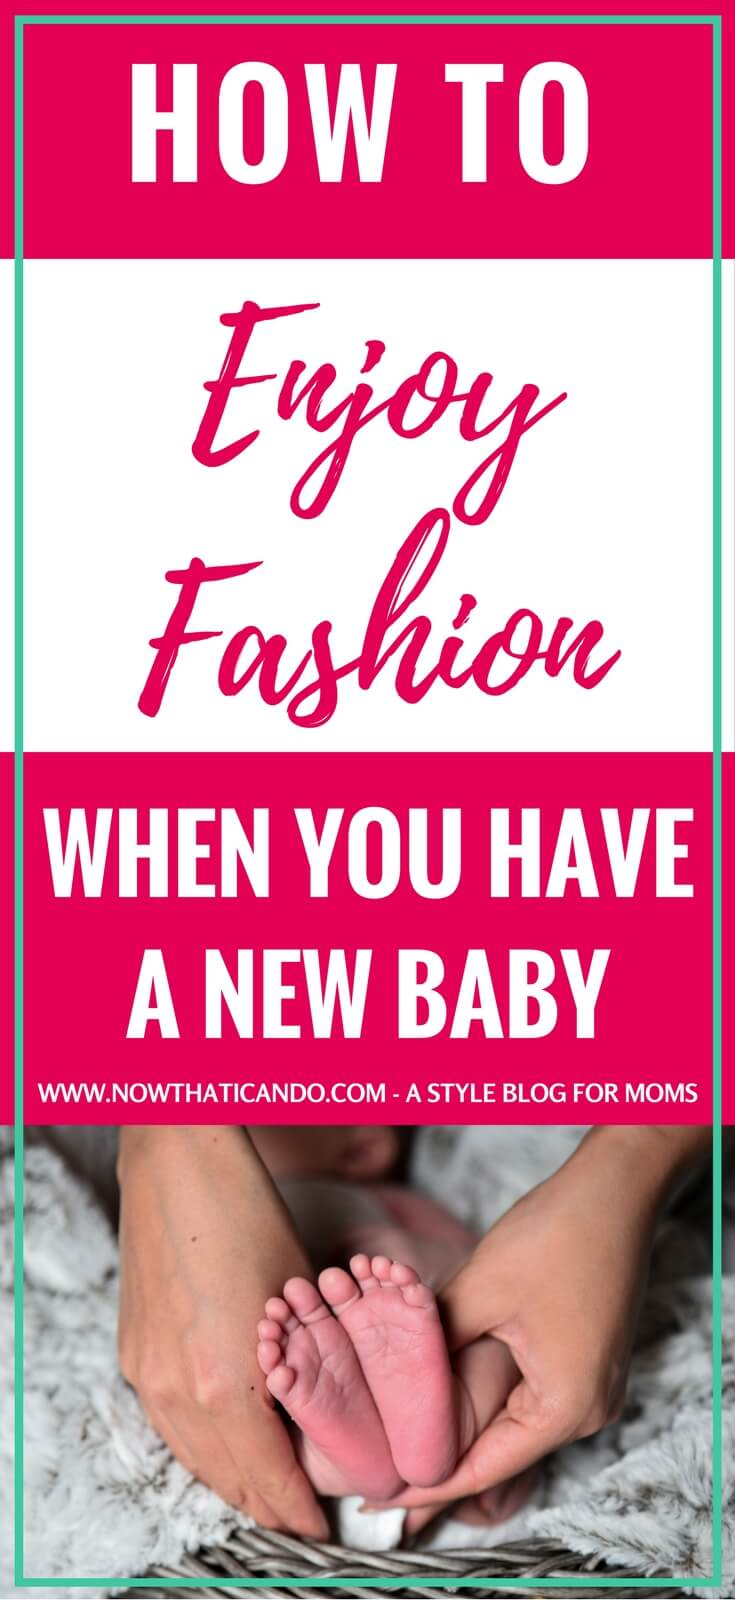 Struggling to feel great about how you look after a new baby? Love these ideas for enjoying fashion again after a baby! Click to read the 5 tips!